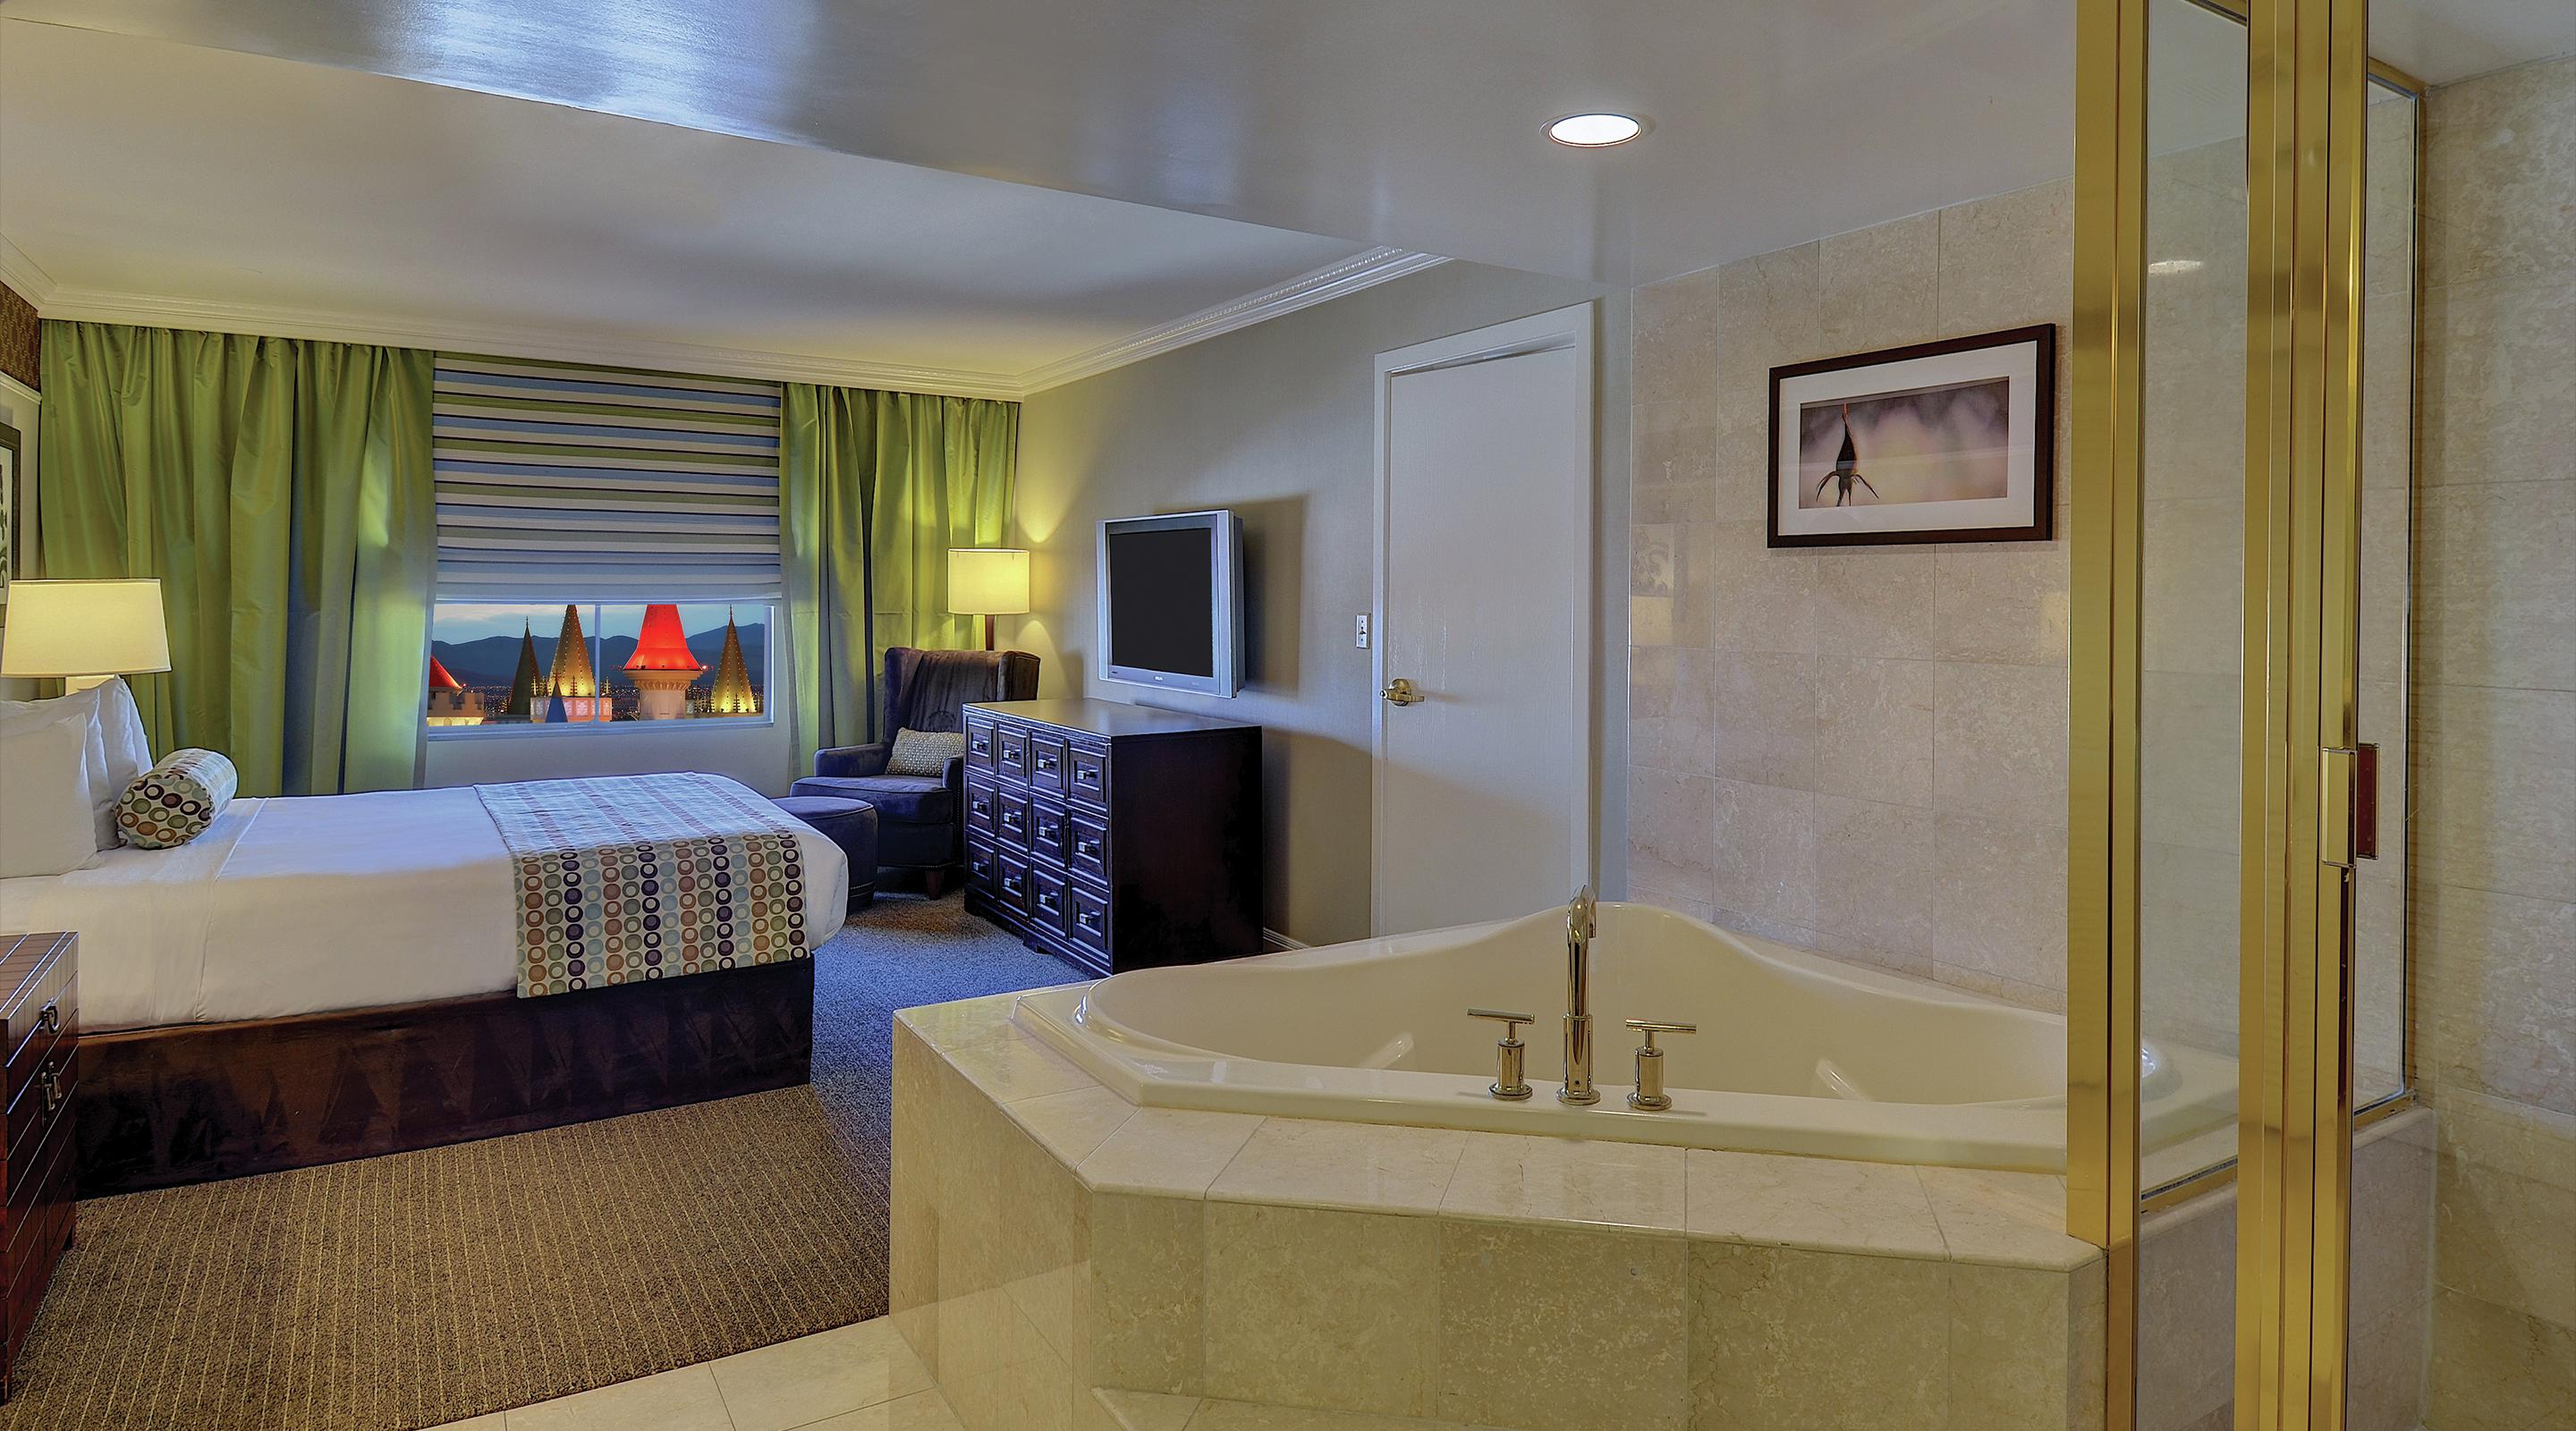 This is an image of the Resort Luxury Suite Soaking Tub.